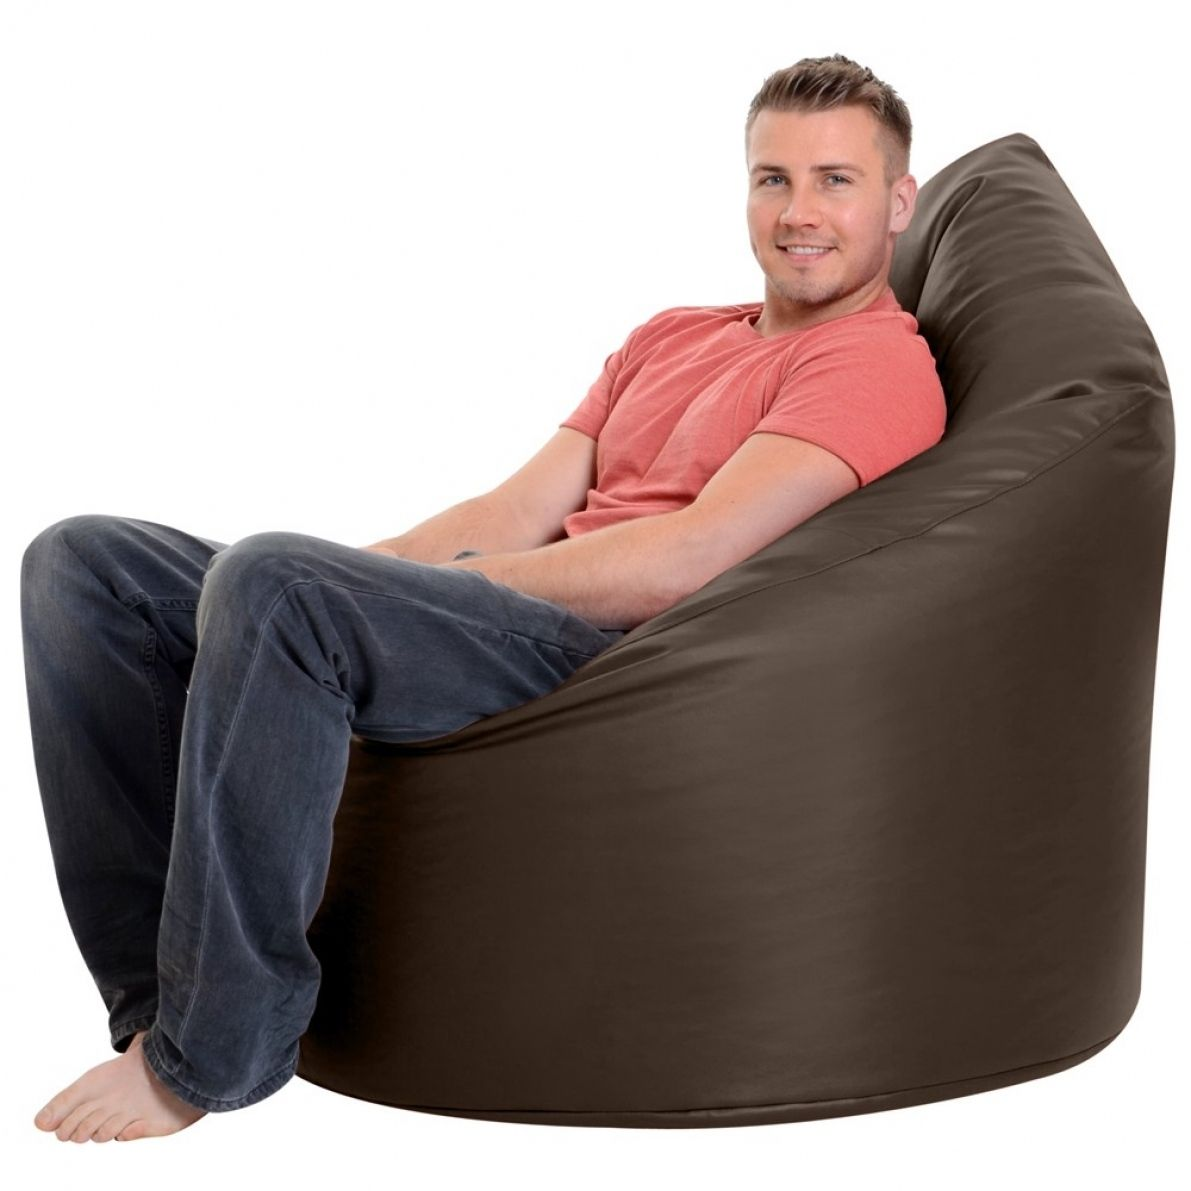 99 Bean Bag Office Chair Home Furniture Images Check More At Http